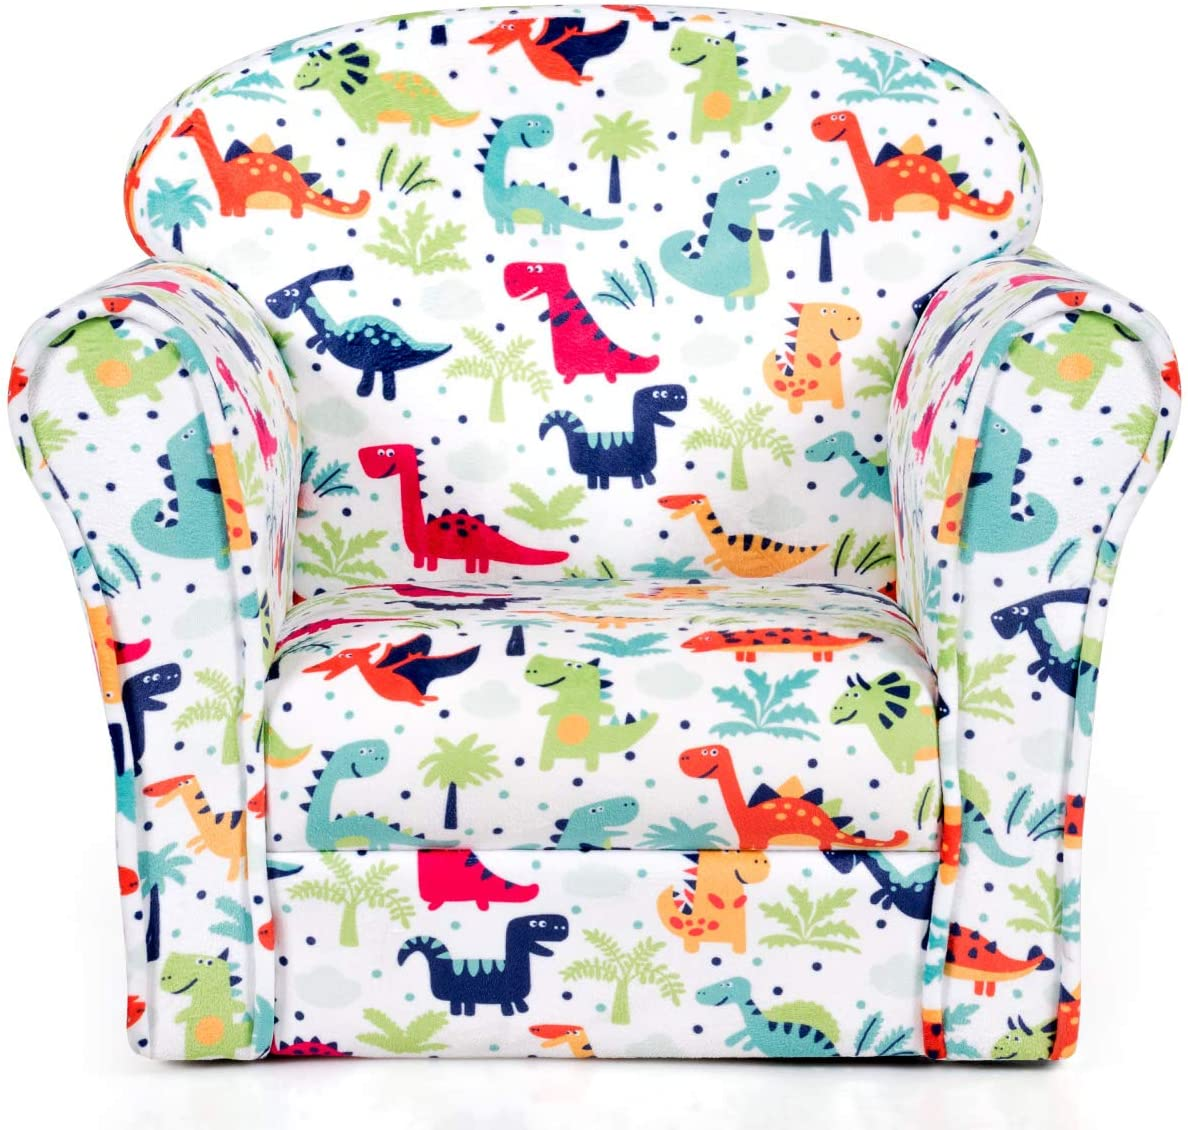 Costzon National uniform free shipping Kids Sofa Children Reservation Armrest Chair Pattern with Toddler